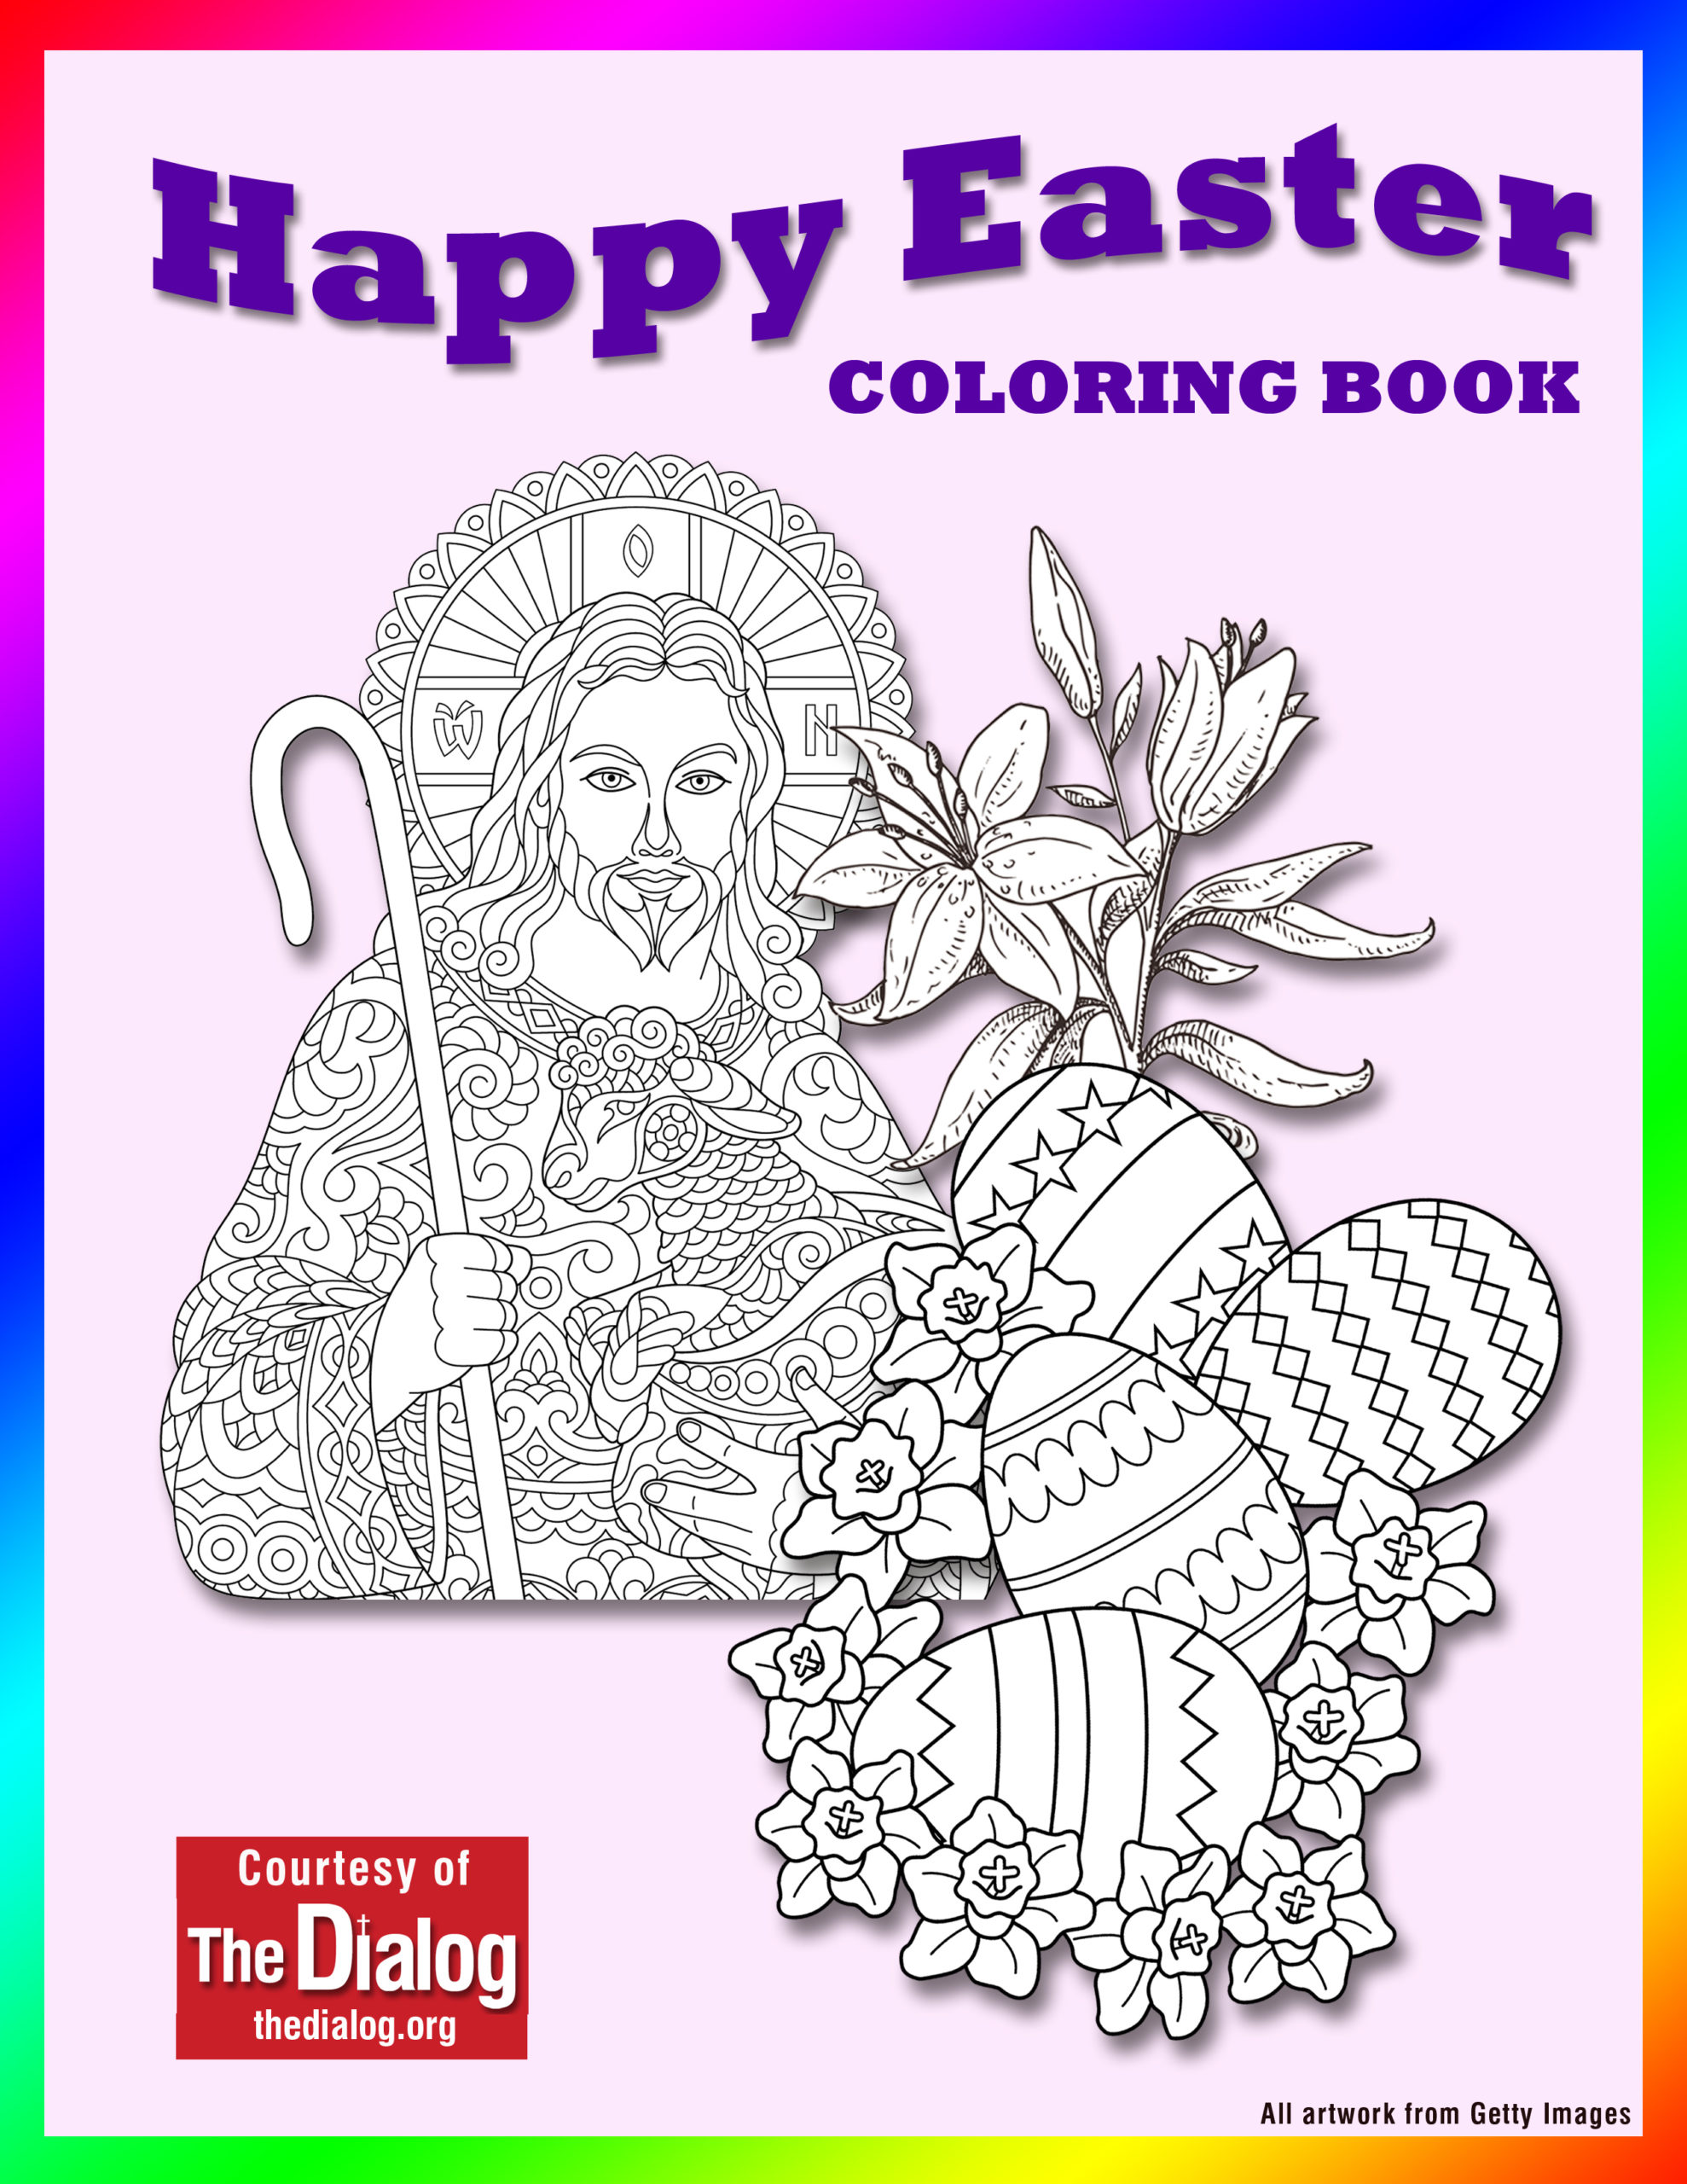 - Easter Coloring Book Available For Download From The Dialog - The